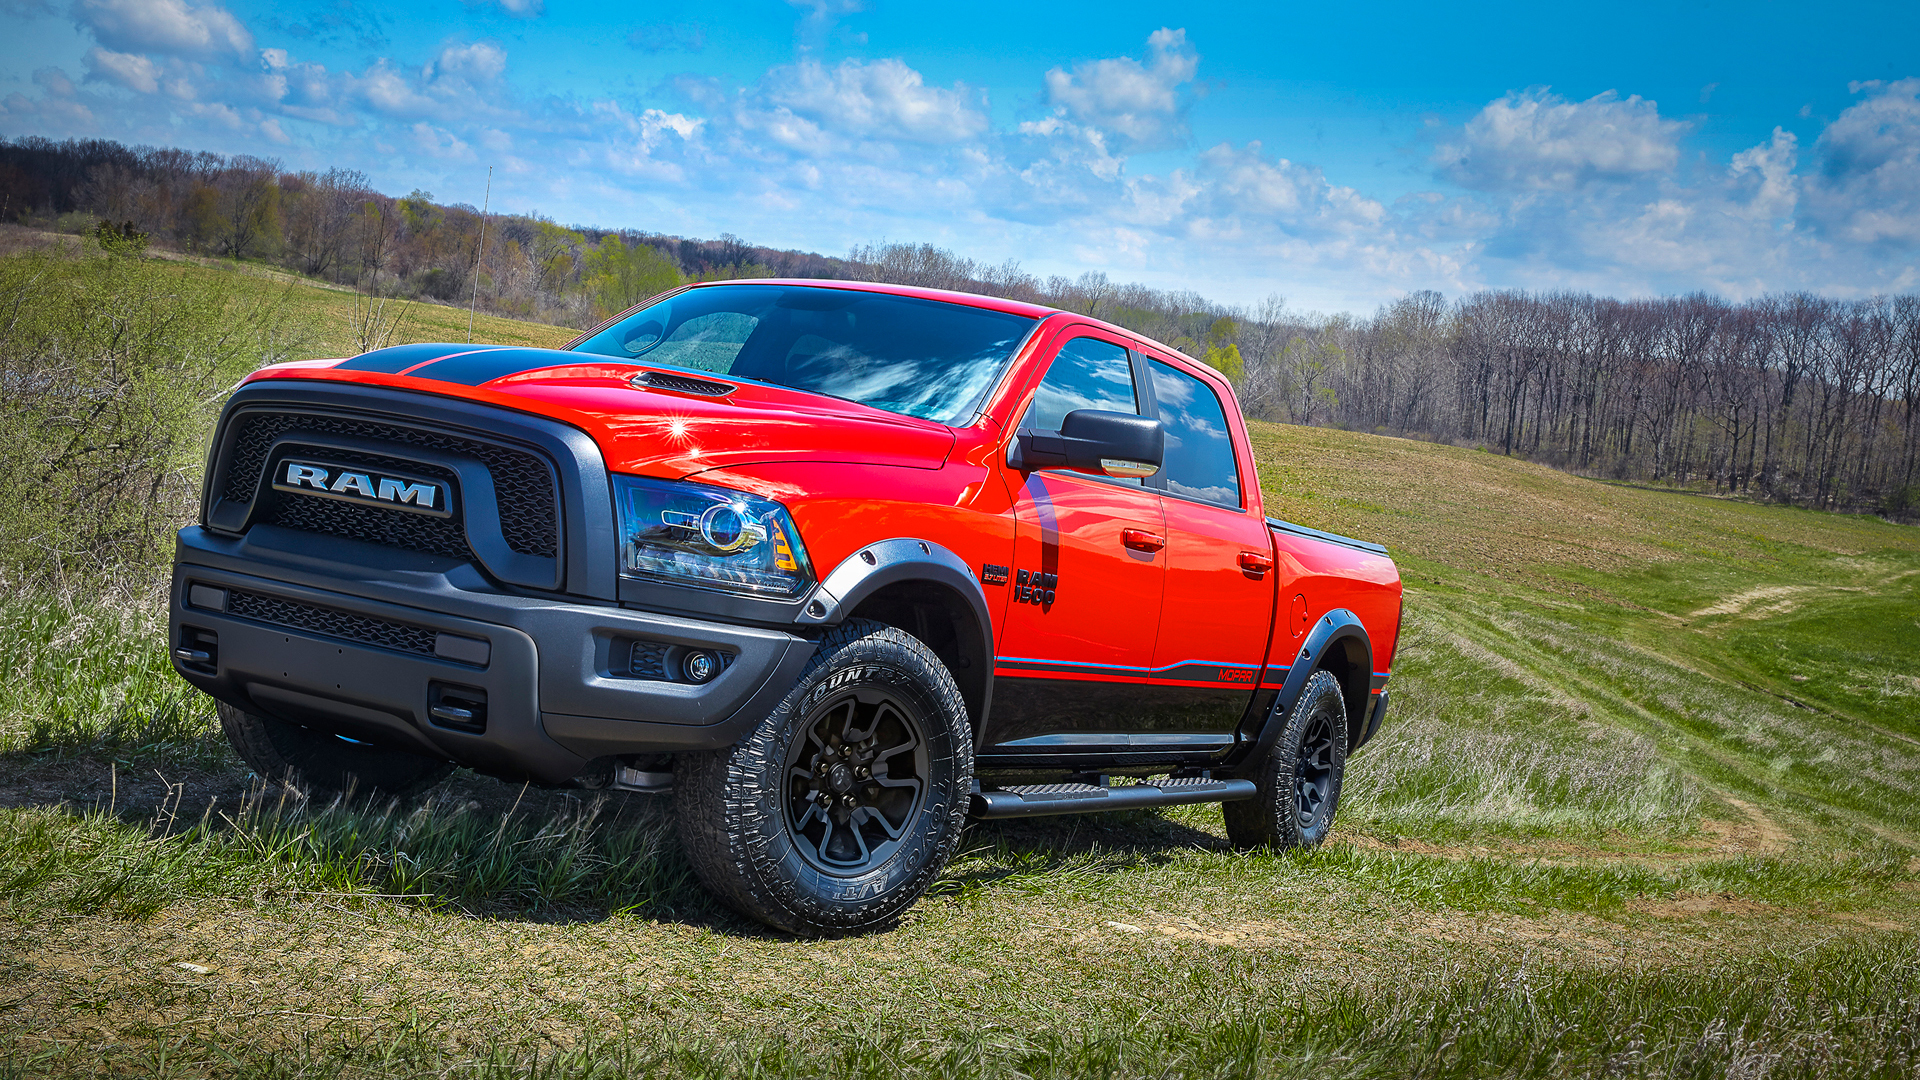 Ram 1500 Running Boards >> Mopar's Limited Edition 2016 Ram Rebel Coming This Summer - Ram Rebel Forum